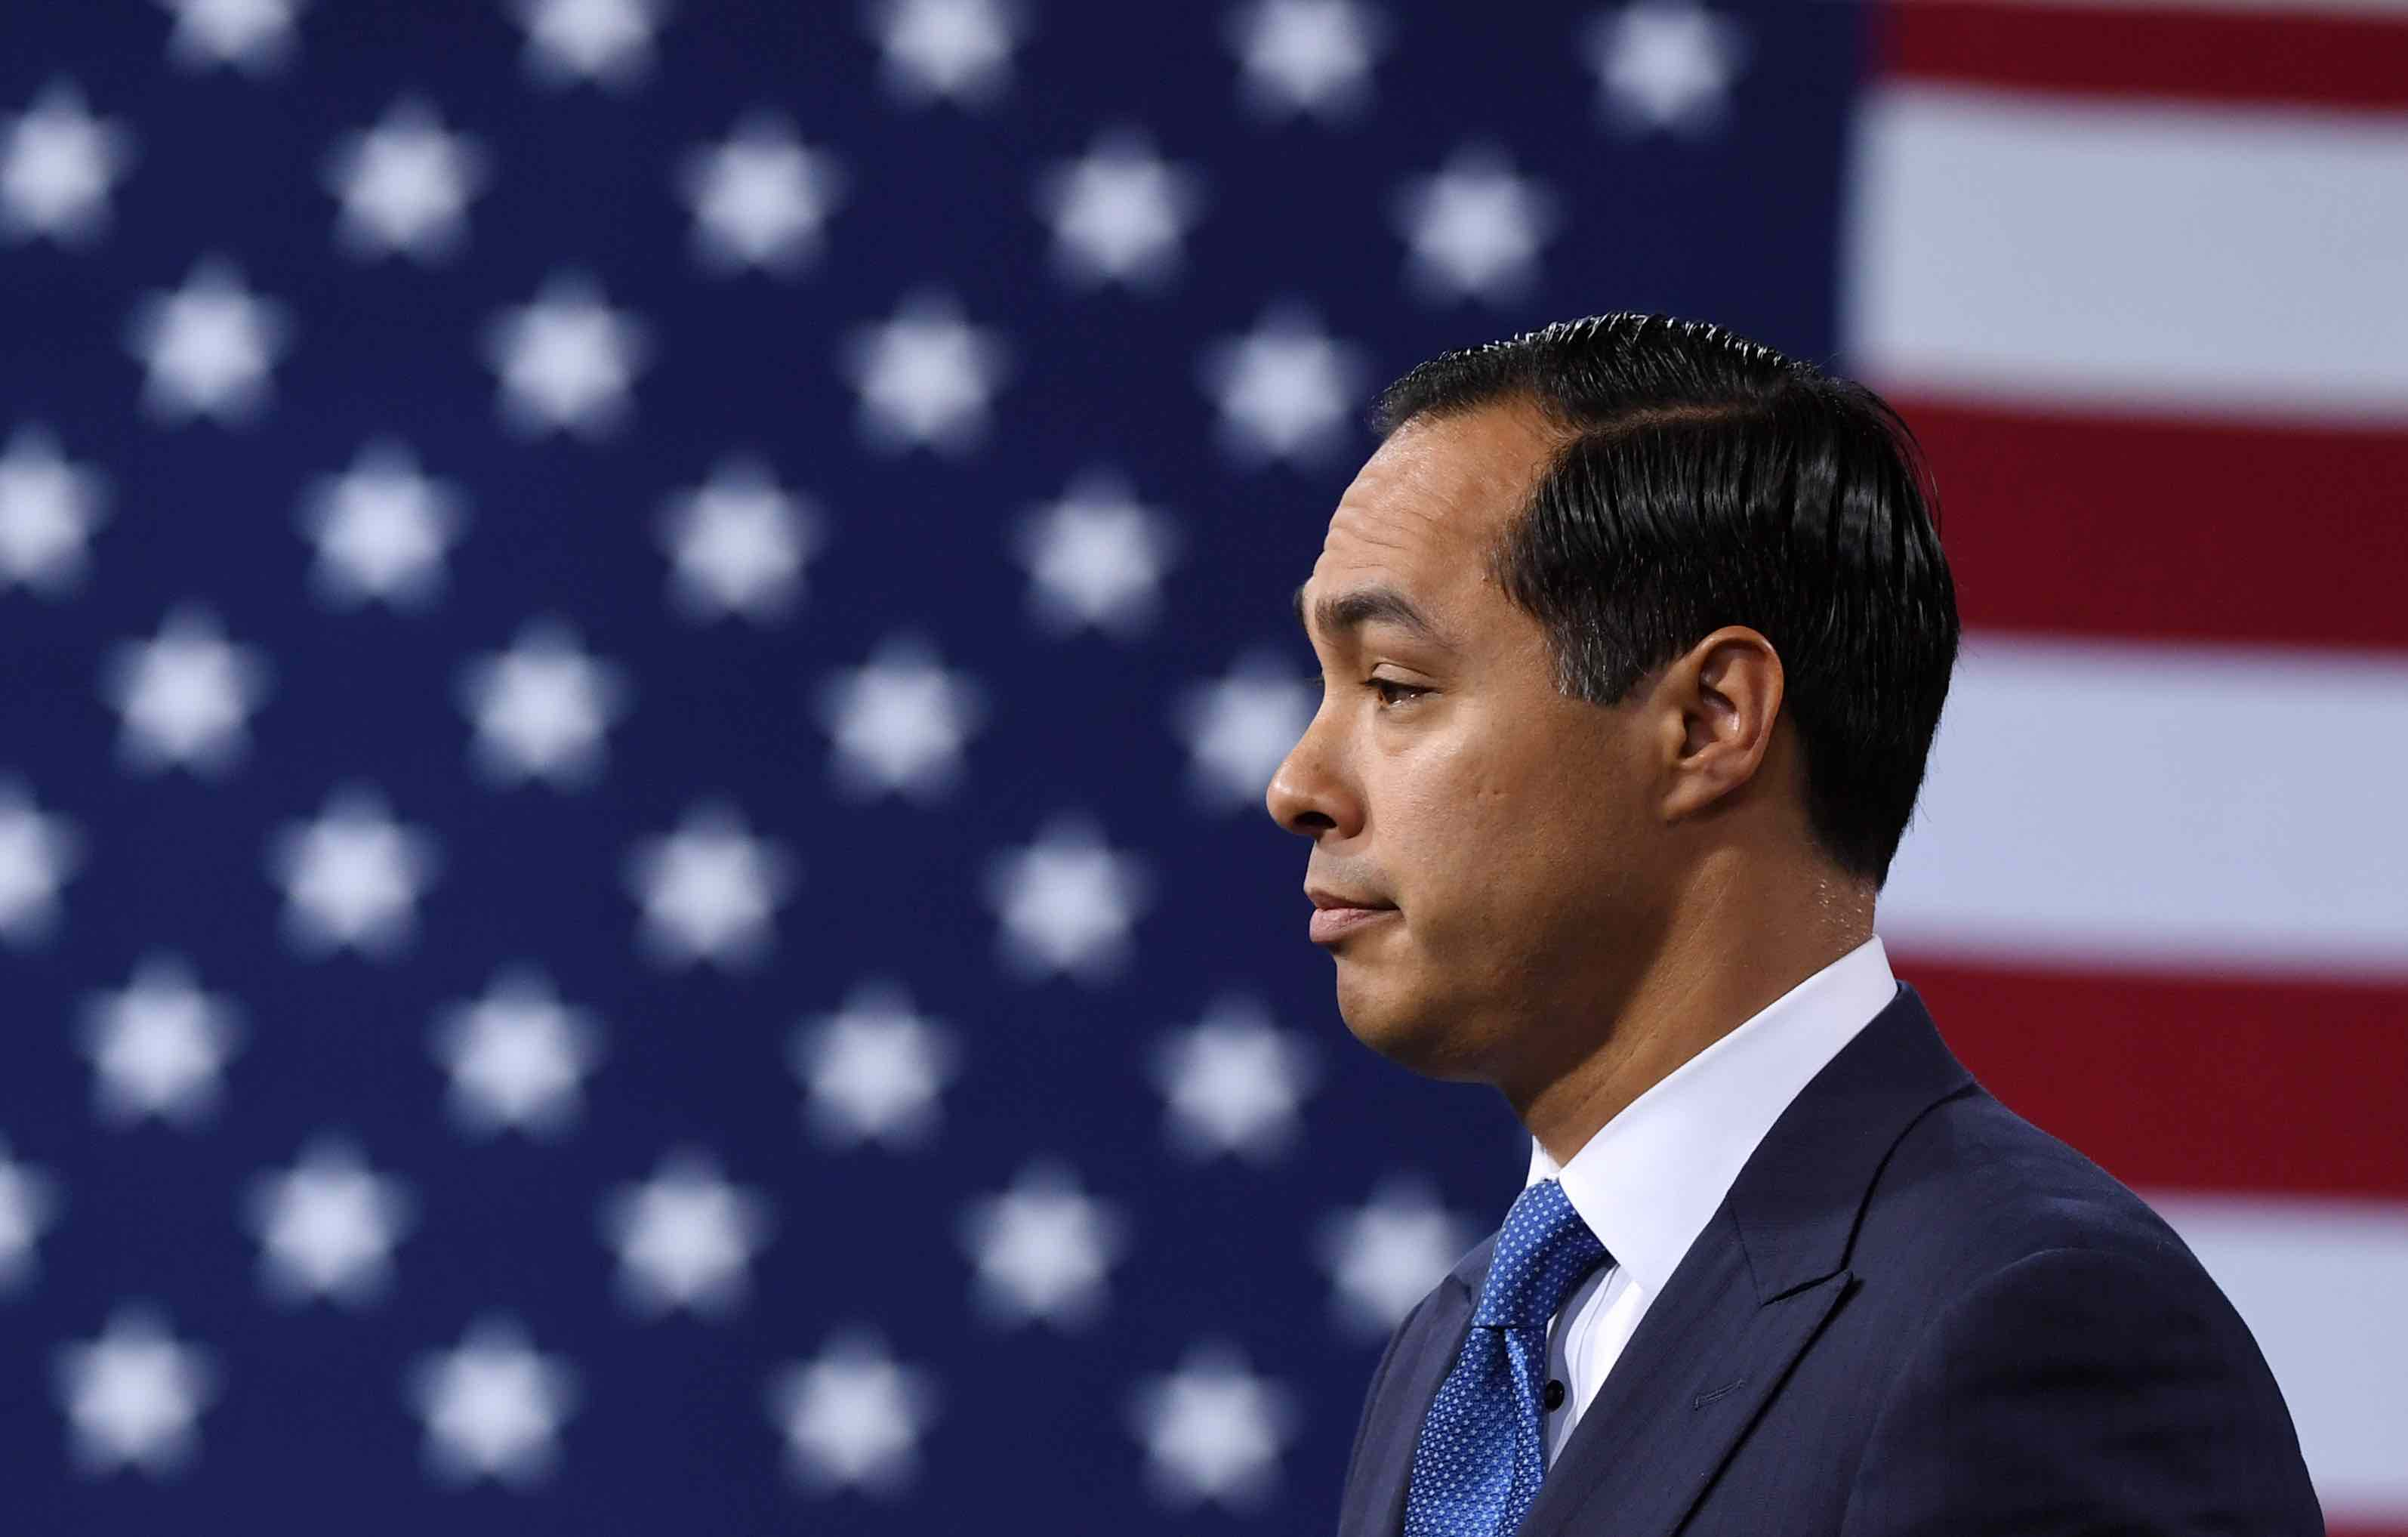 Julián Castro Was Asked About His Fracking History at Climate Change Town Hall. Here's What He Said